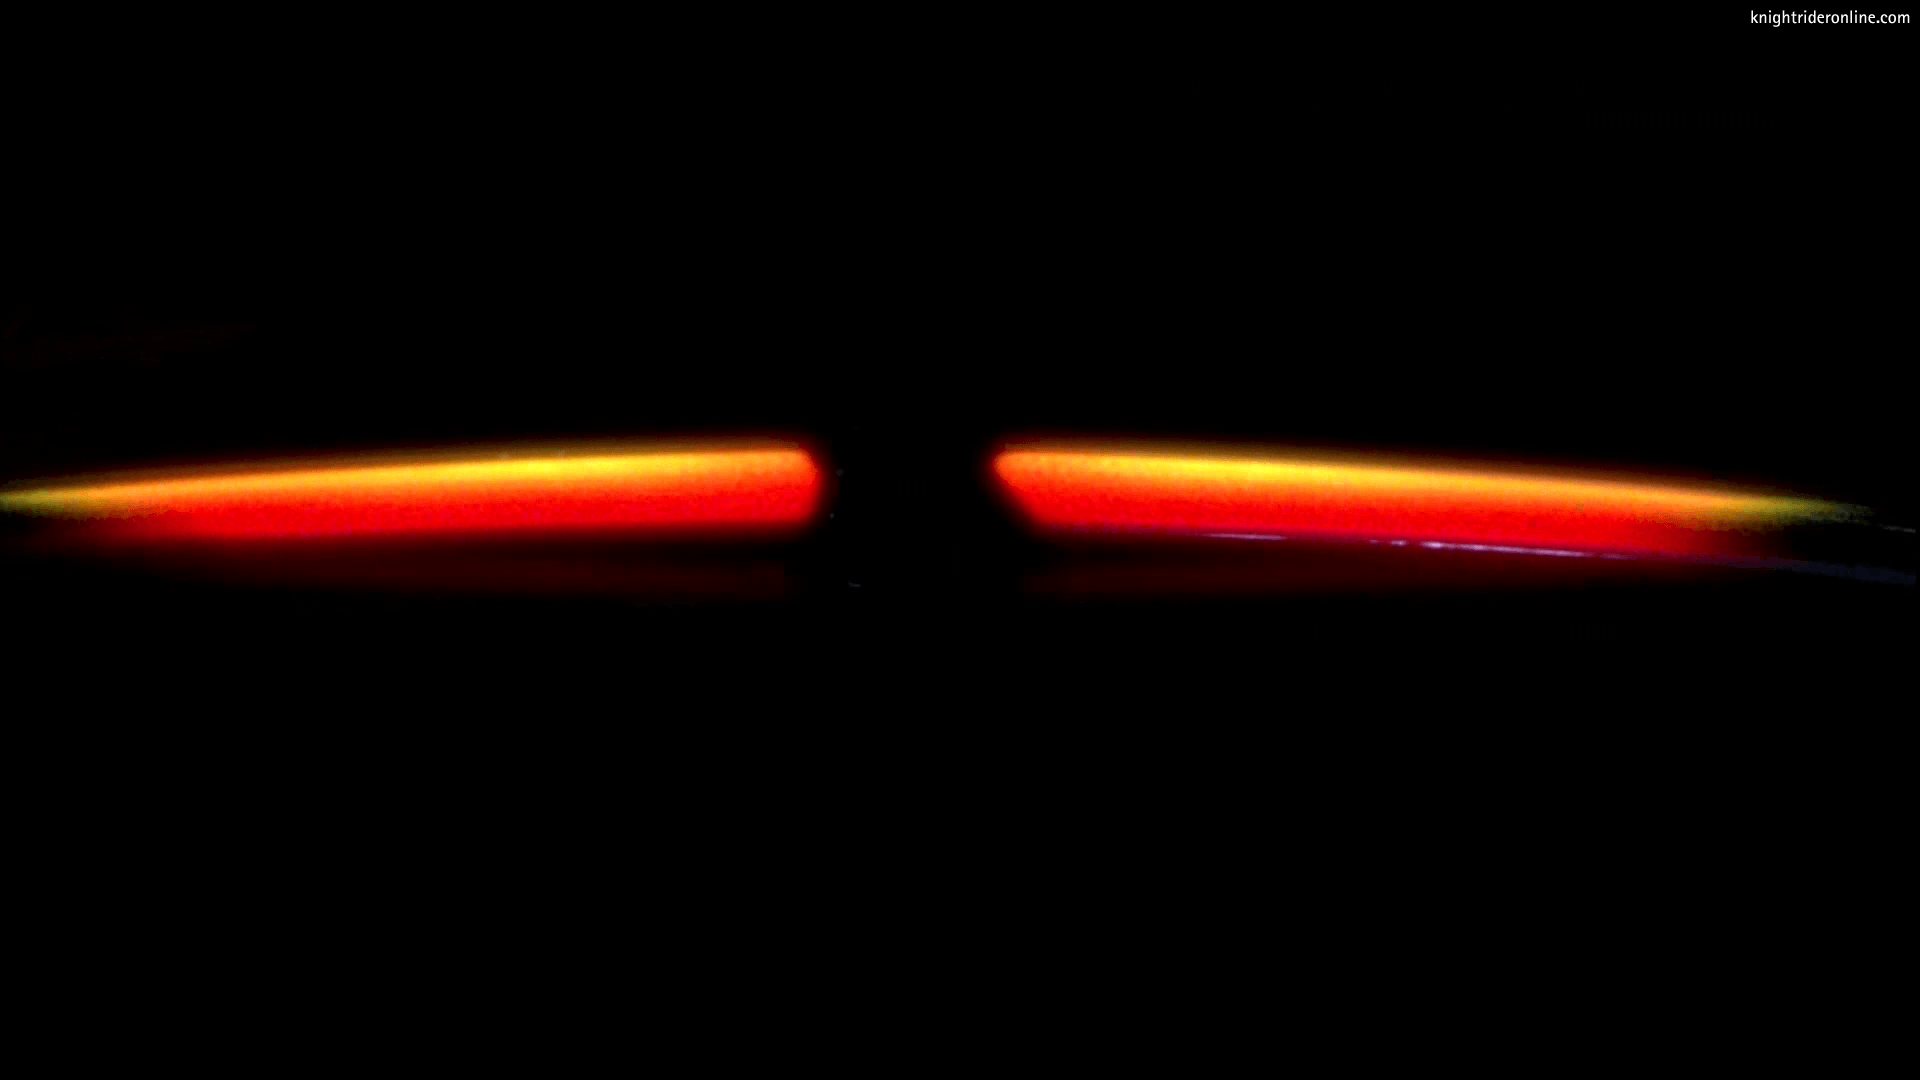 Knight Rider Wallpapers 1920x1080